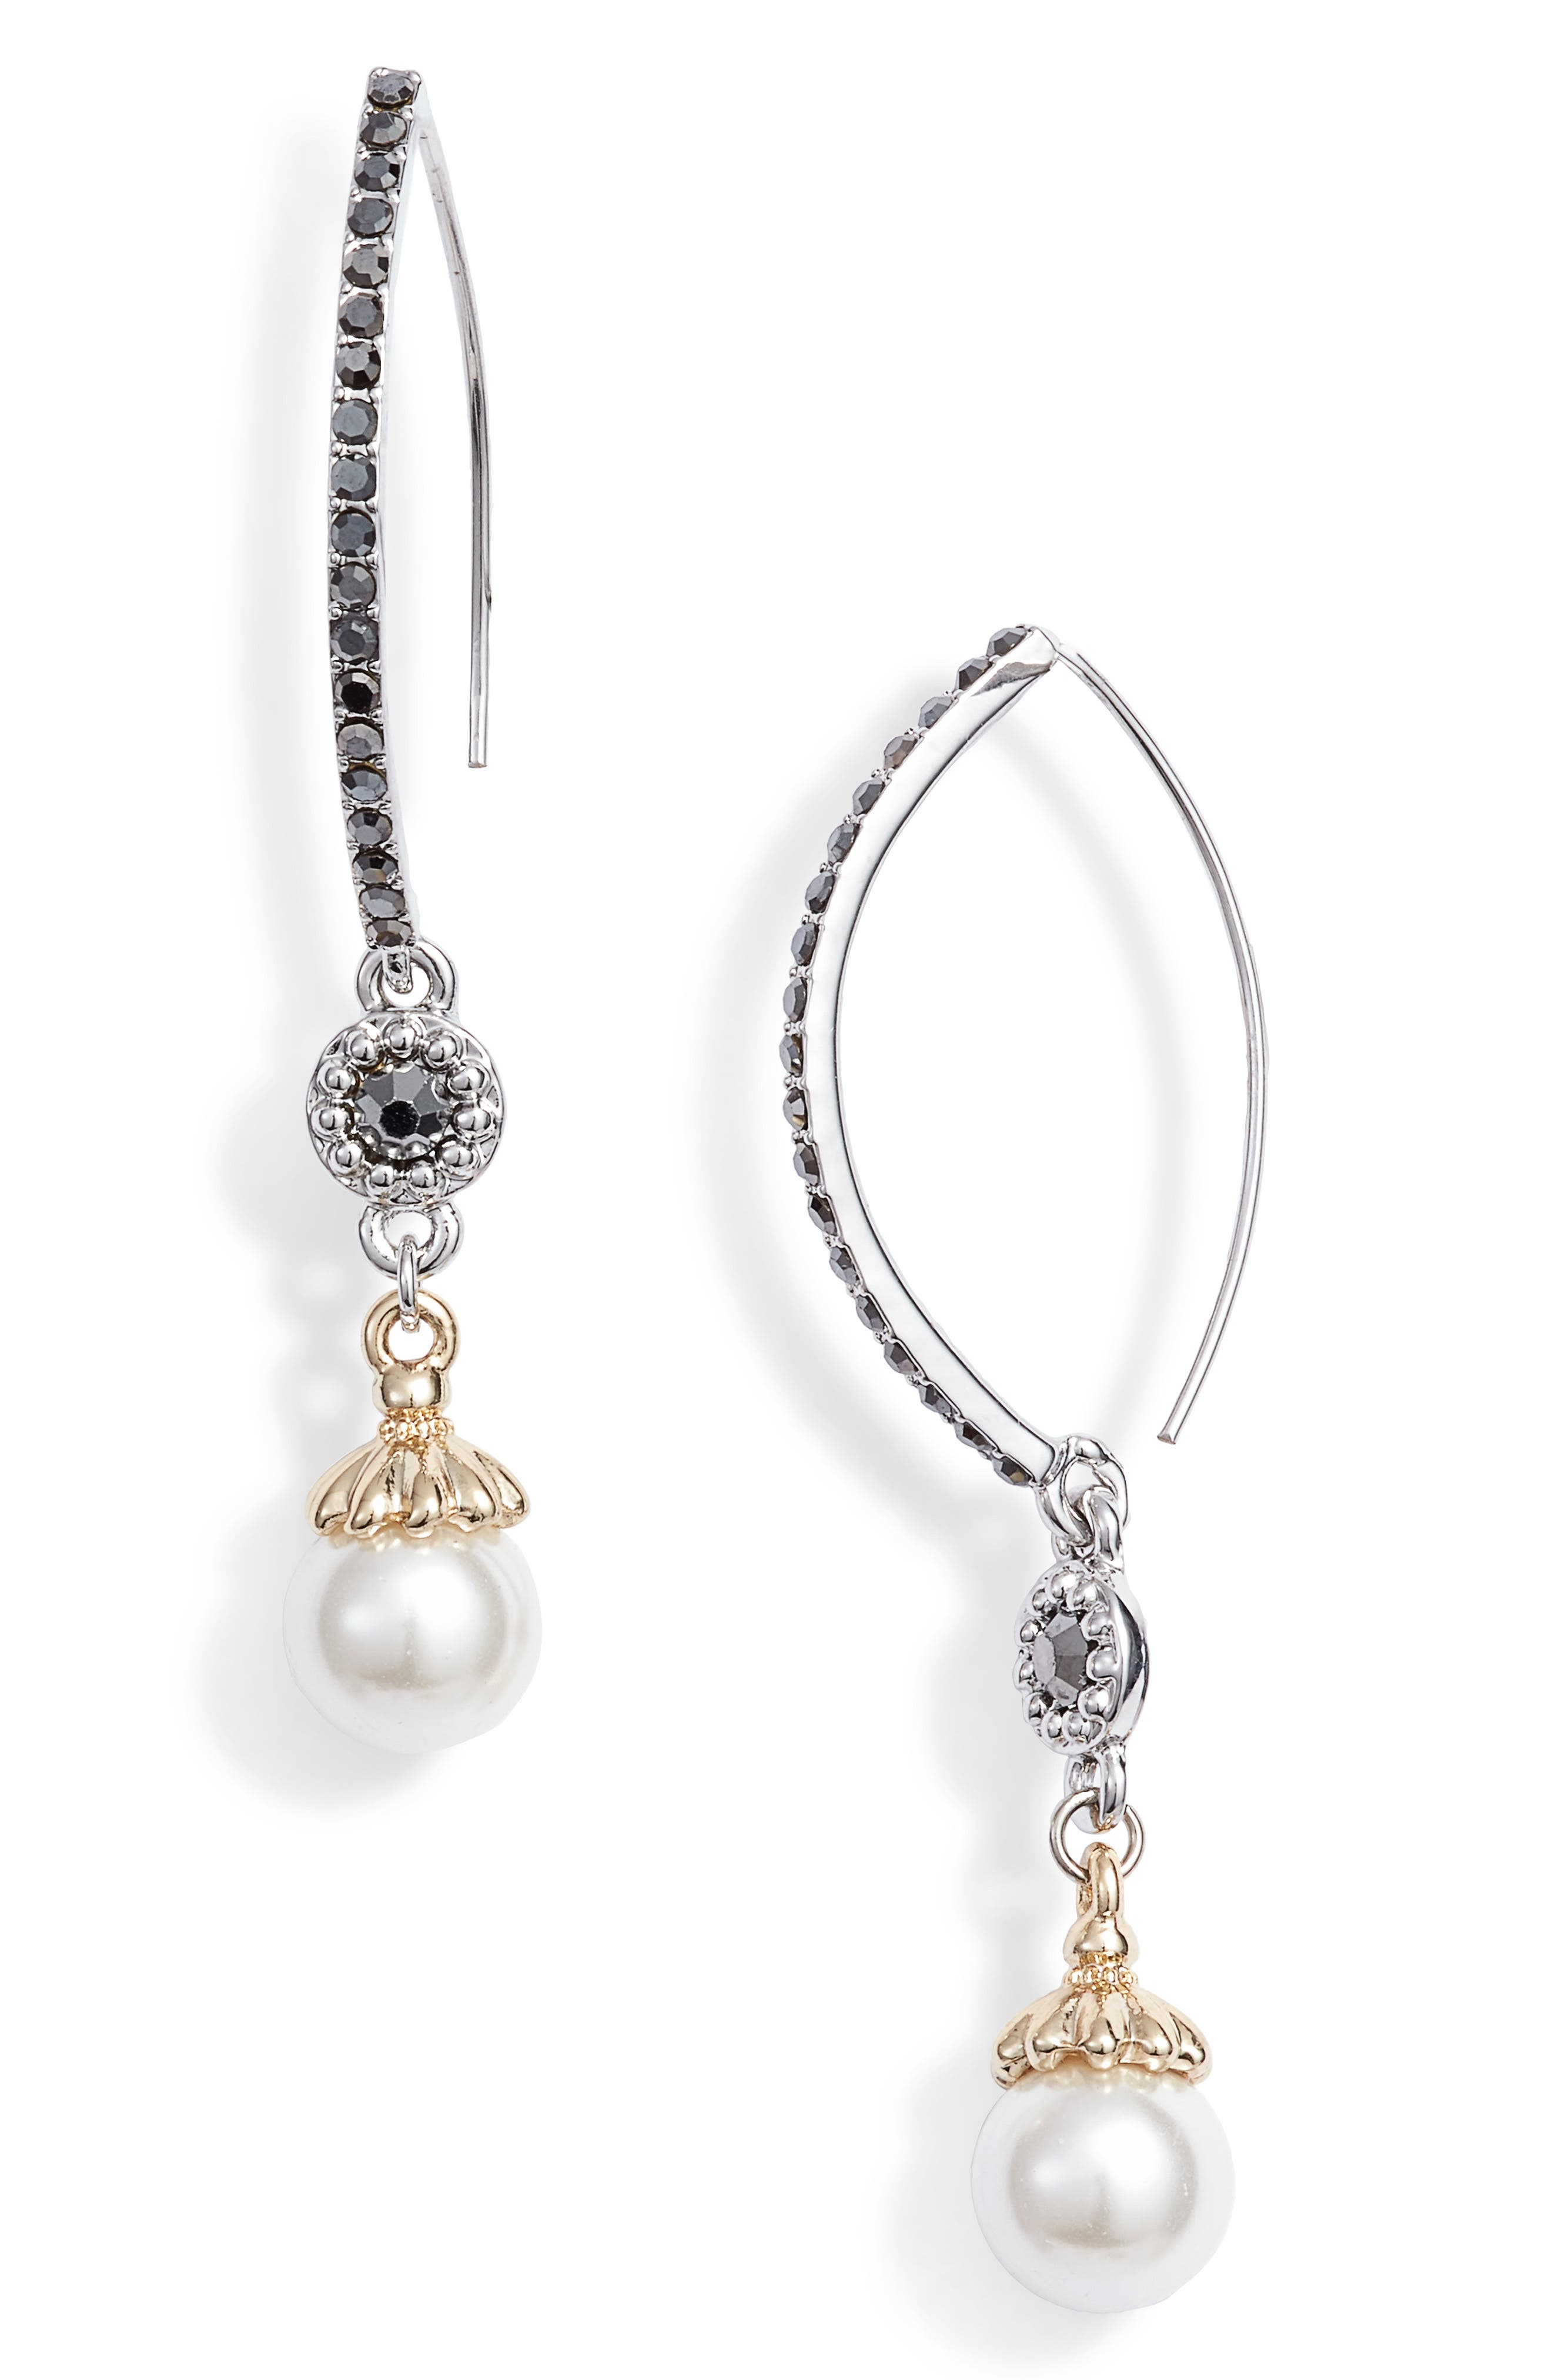 JENNY PACKHAM, Imitation Pearl Threader Earrings, Main thumbnail 1, color, PEARL/ SILVER